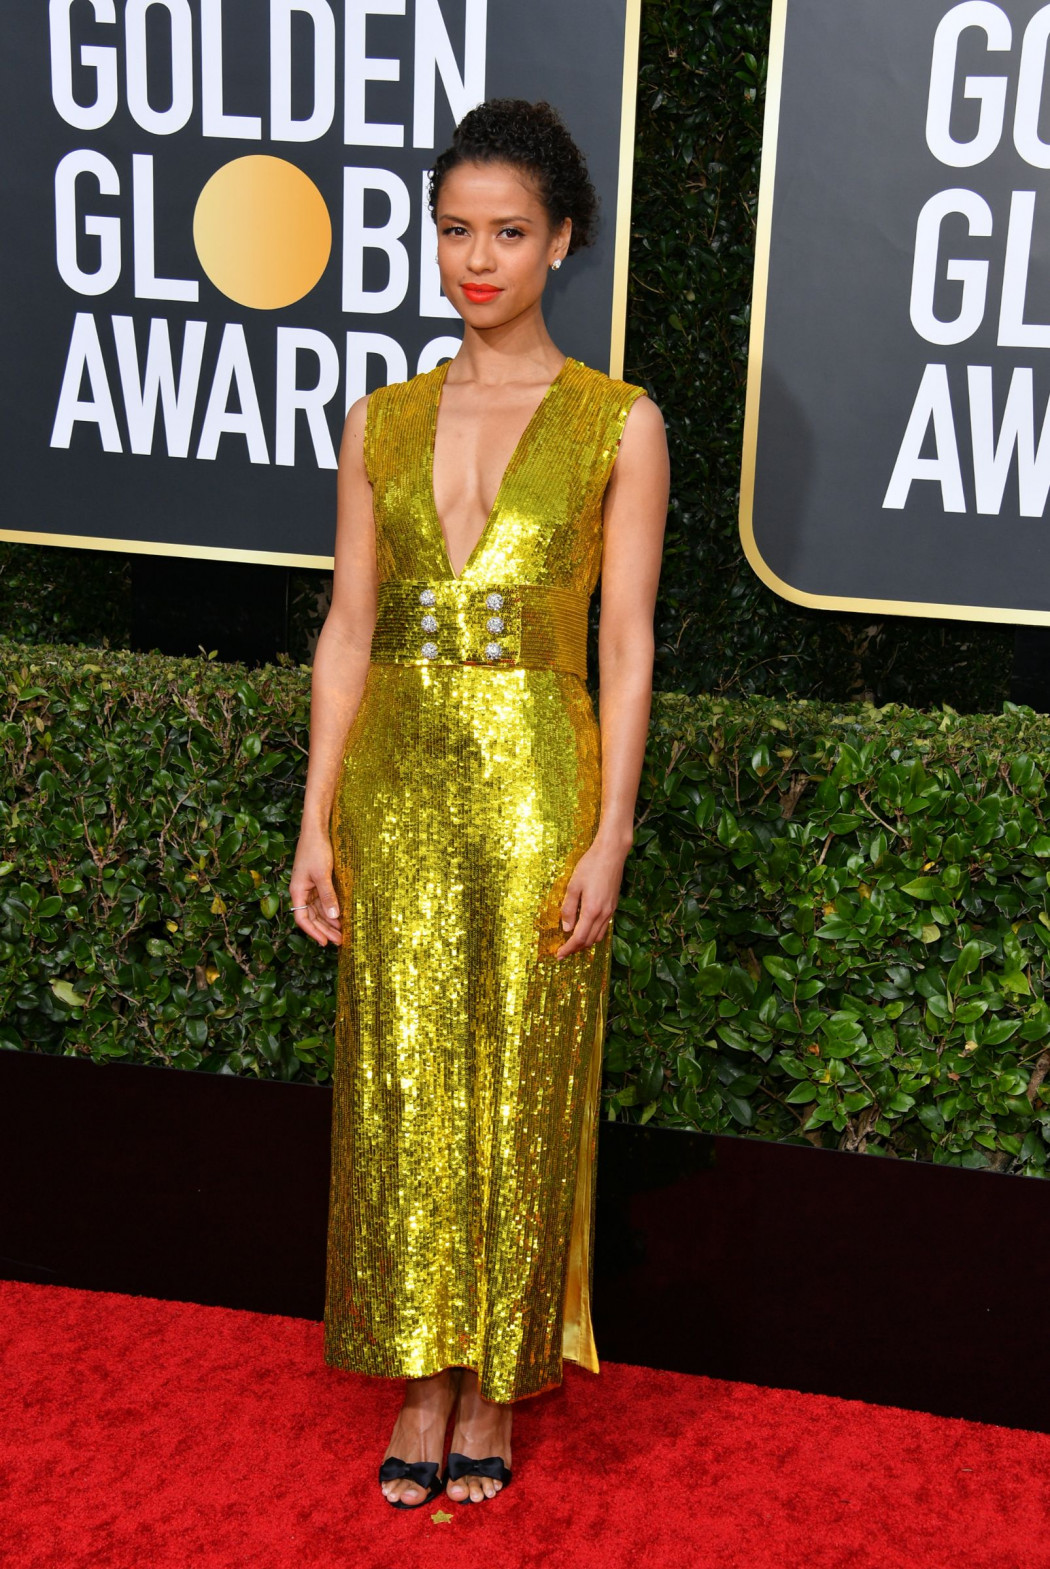 Golden Globes 2020 : les plus beaux looks du tapis rouge - 27